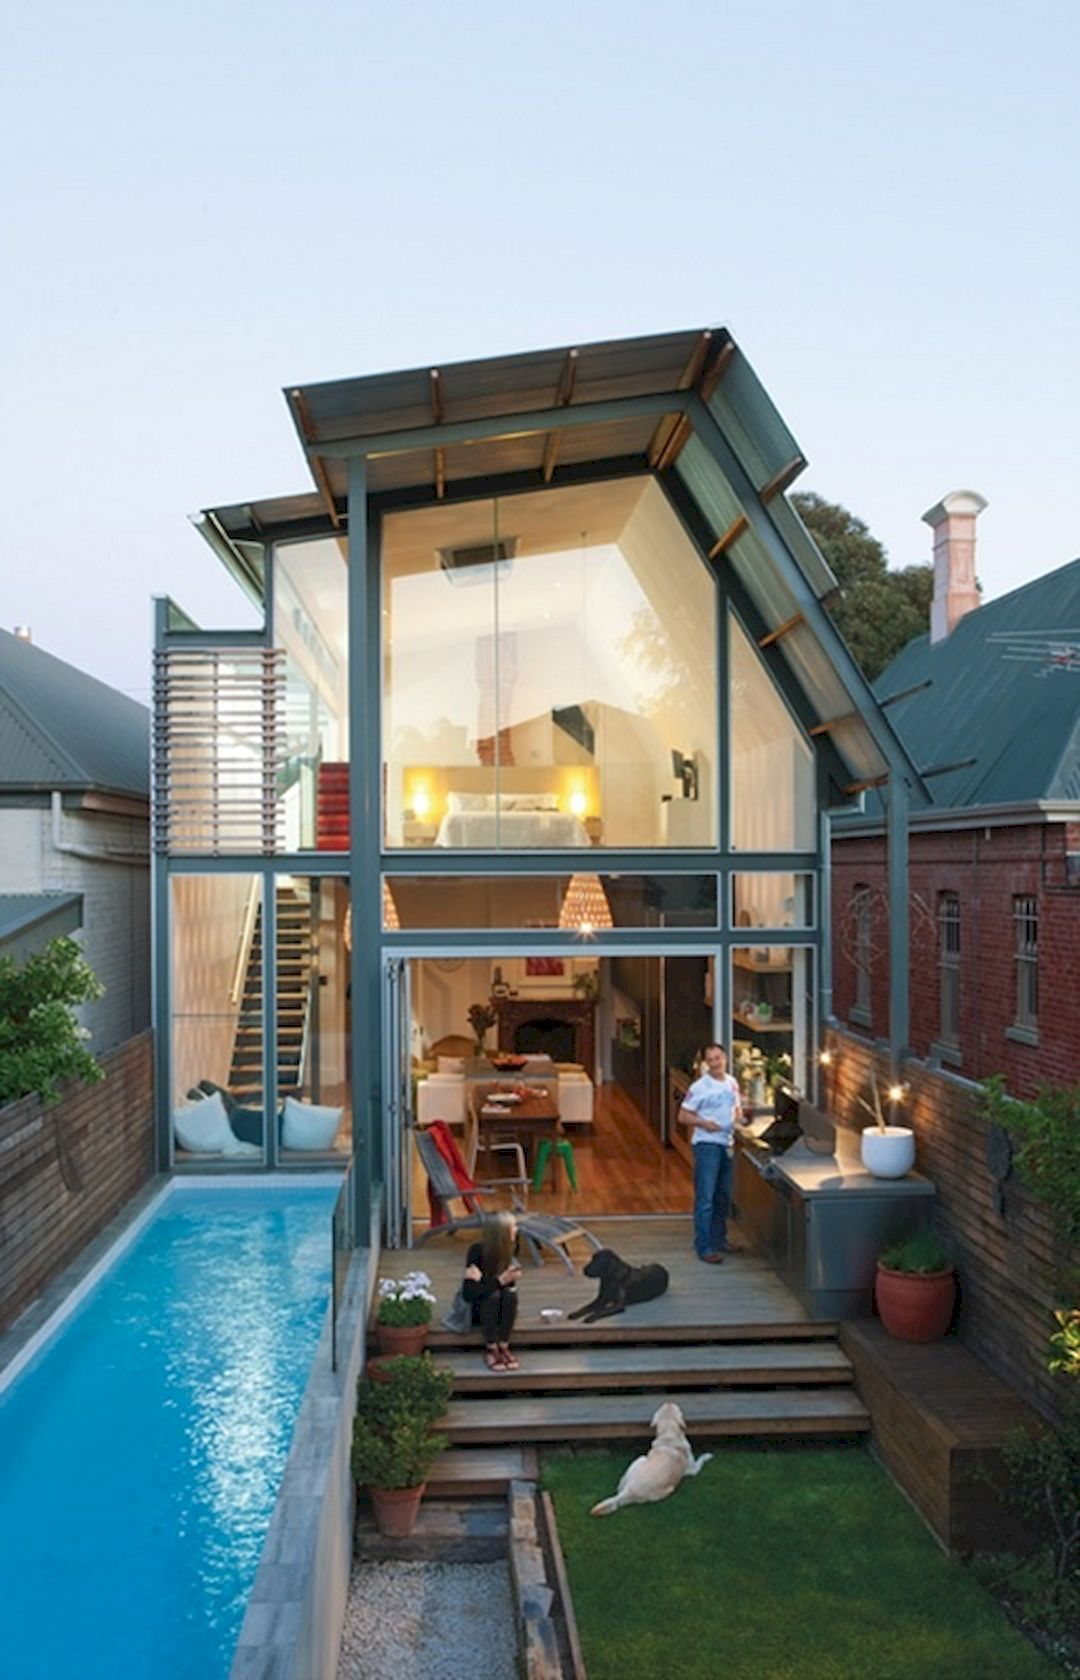 43 Outstanding Unique House Design Inspirations | House Design and on modern rectangularlar pools designs, modern front designs, modern loft house designs, modern pool glass, modern guest room designs, modern contemporary pool, house plan your own designs, modern ranch style house designs, modern game room designs, modern workshop designs, modern houses with a pool, architecture modern house designs, modern carriage house designs, modern fountain designs, modern pool renovation, modern exercise room designs, modern pool hotels, modern dairy farm designs, modern horse barn designs, modern lawn designs,